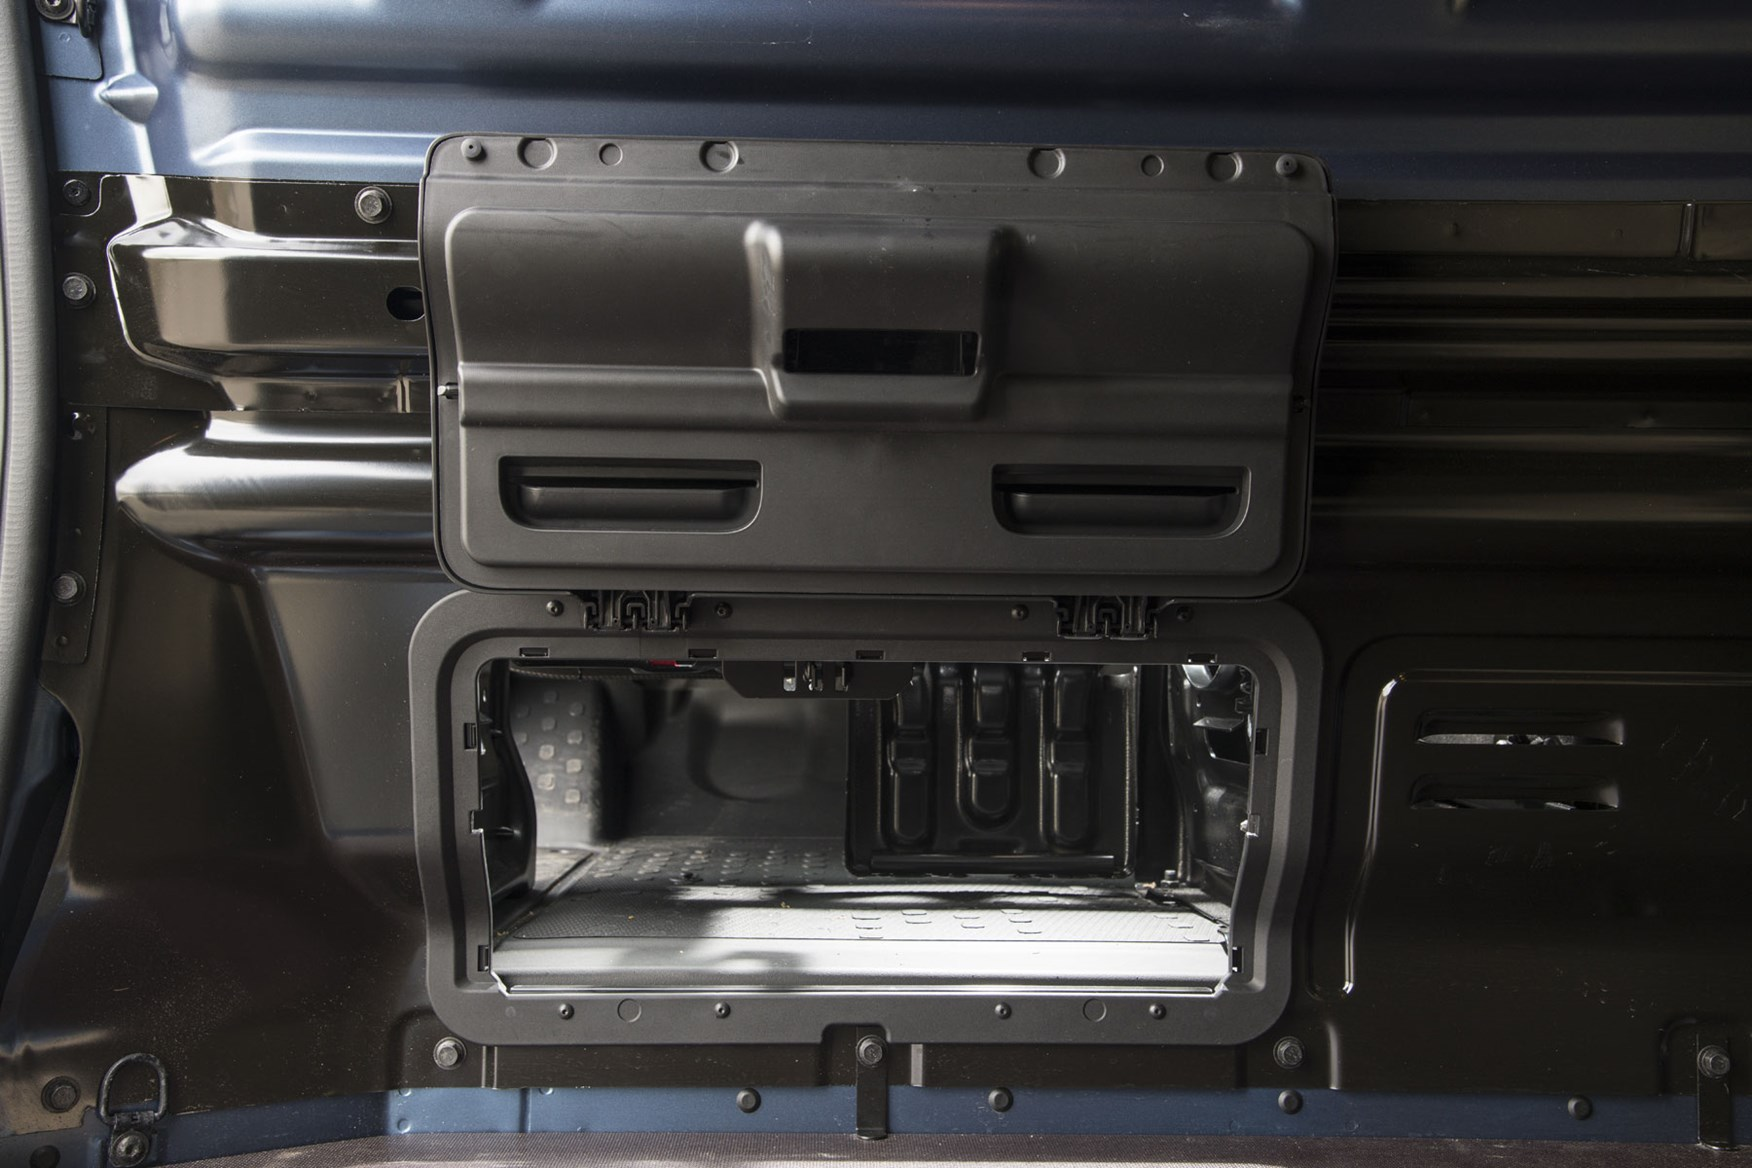 Renault trafic review - facelift, load-through bulkhead, 2020, blue